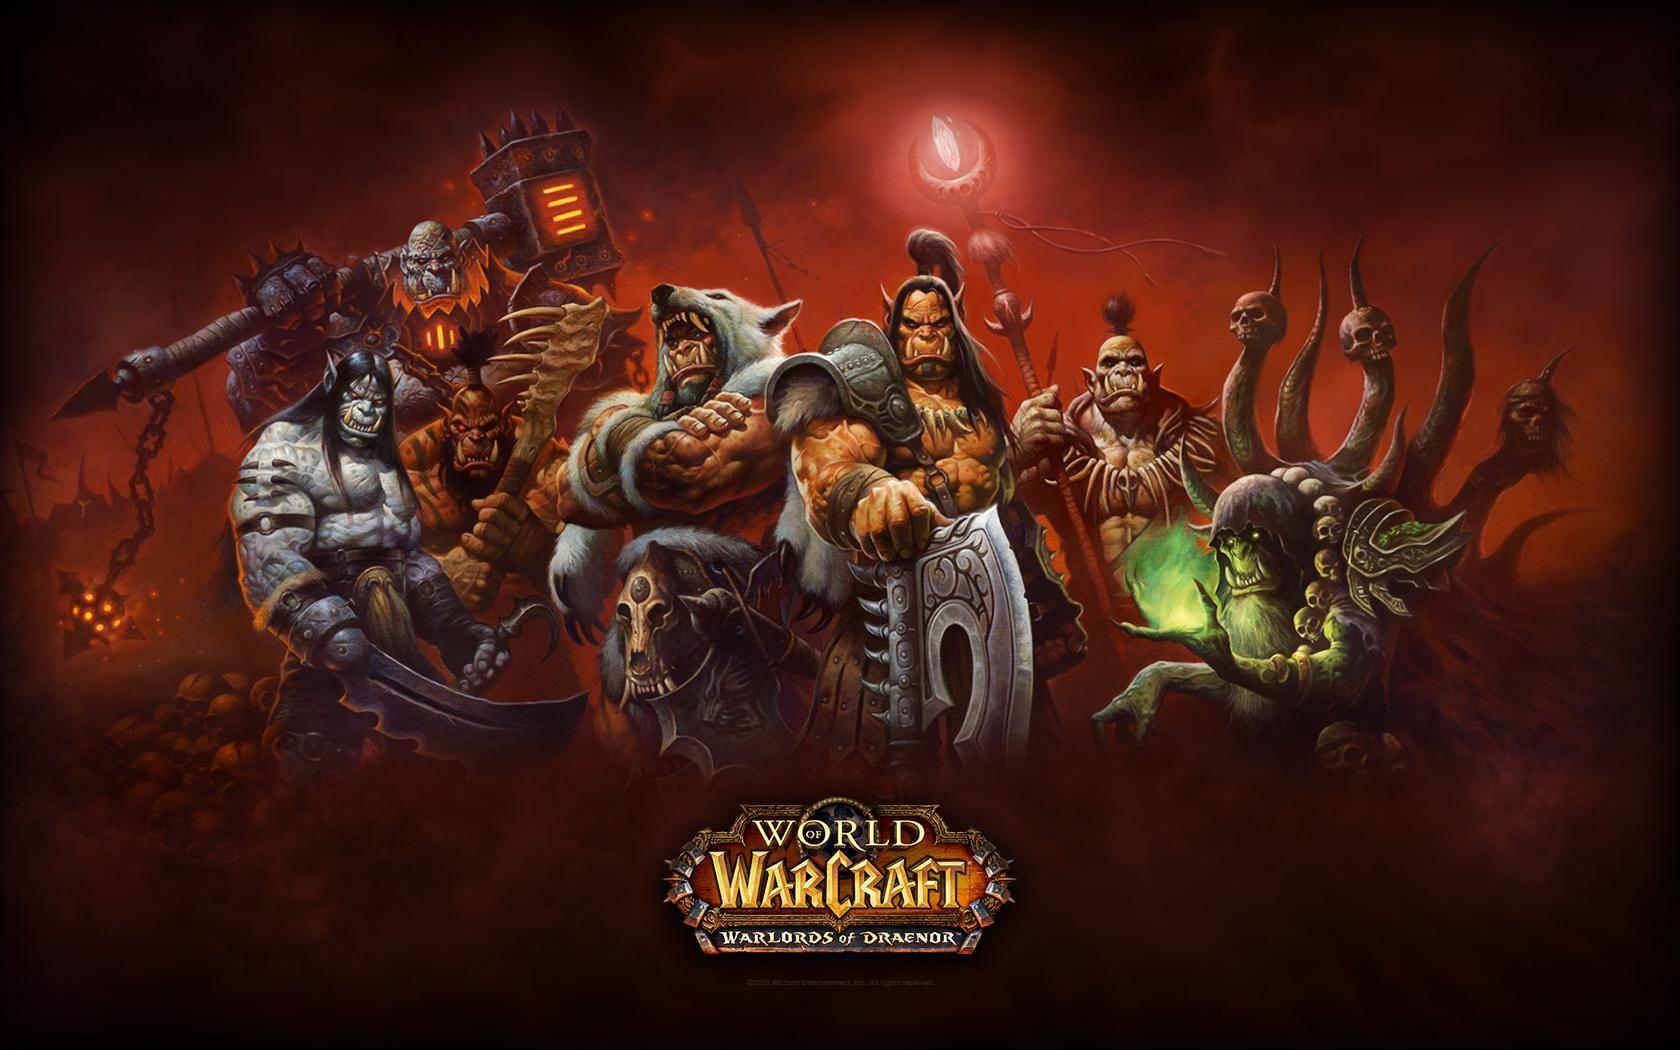 World of Warcraft recibe el parche 6.2, Fury of Hellfire